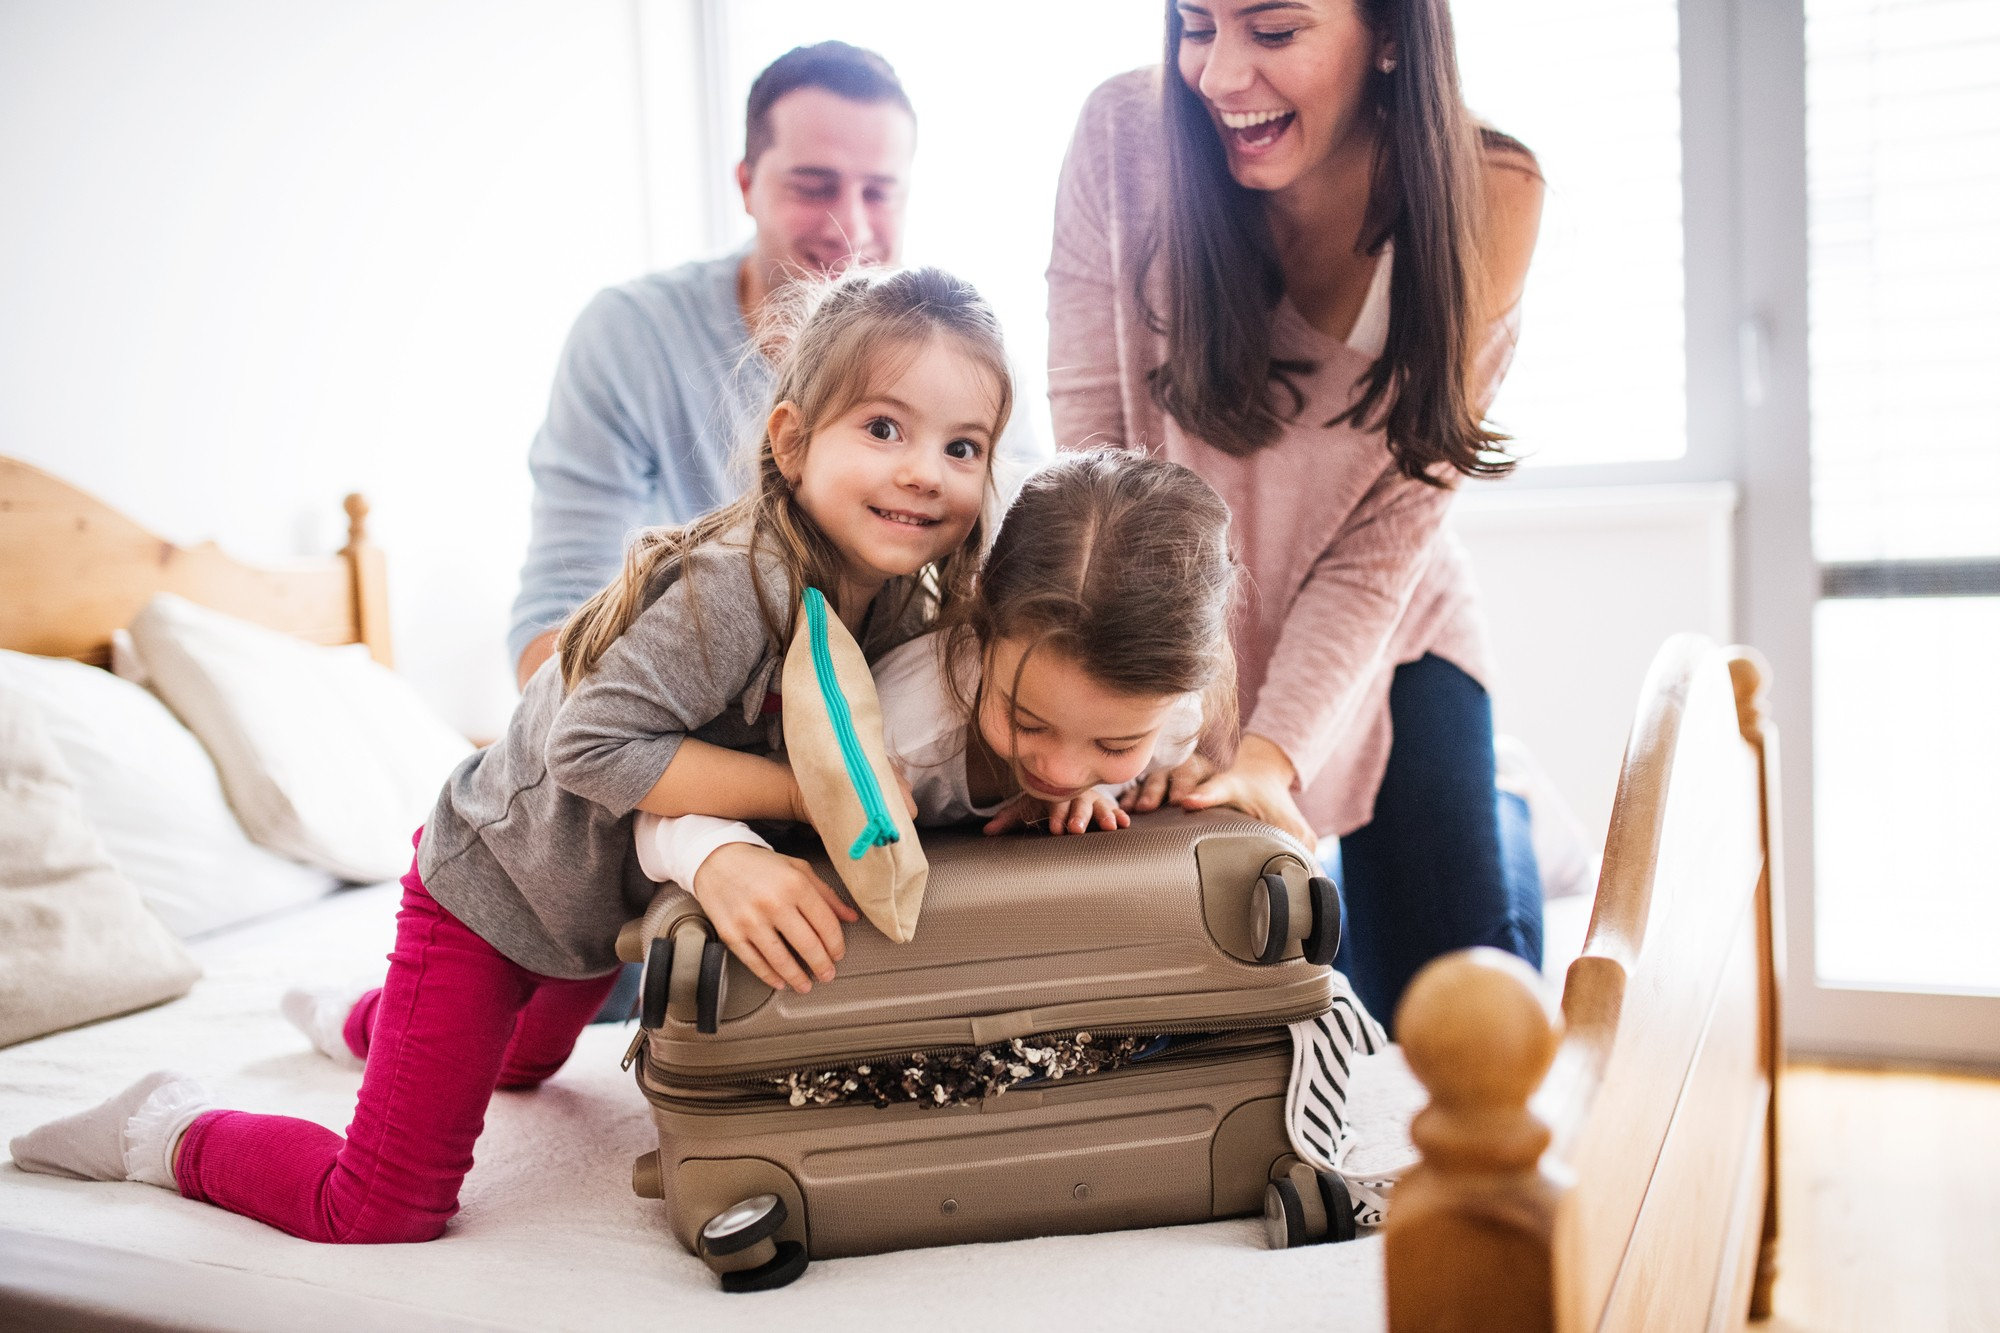 A printable packing list for kids makes preparing for family vacation easier and more fun!